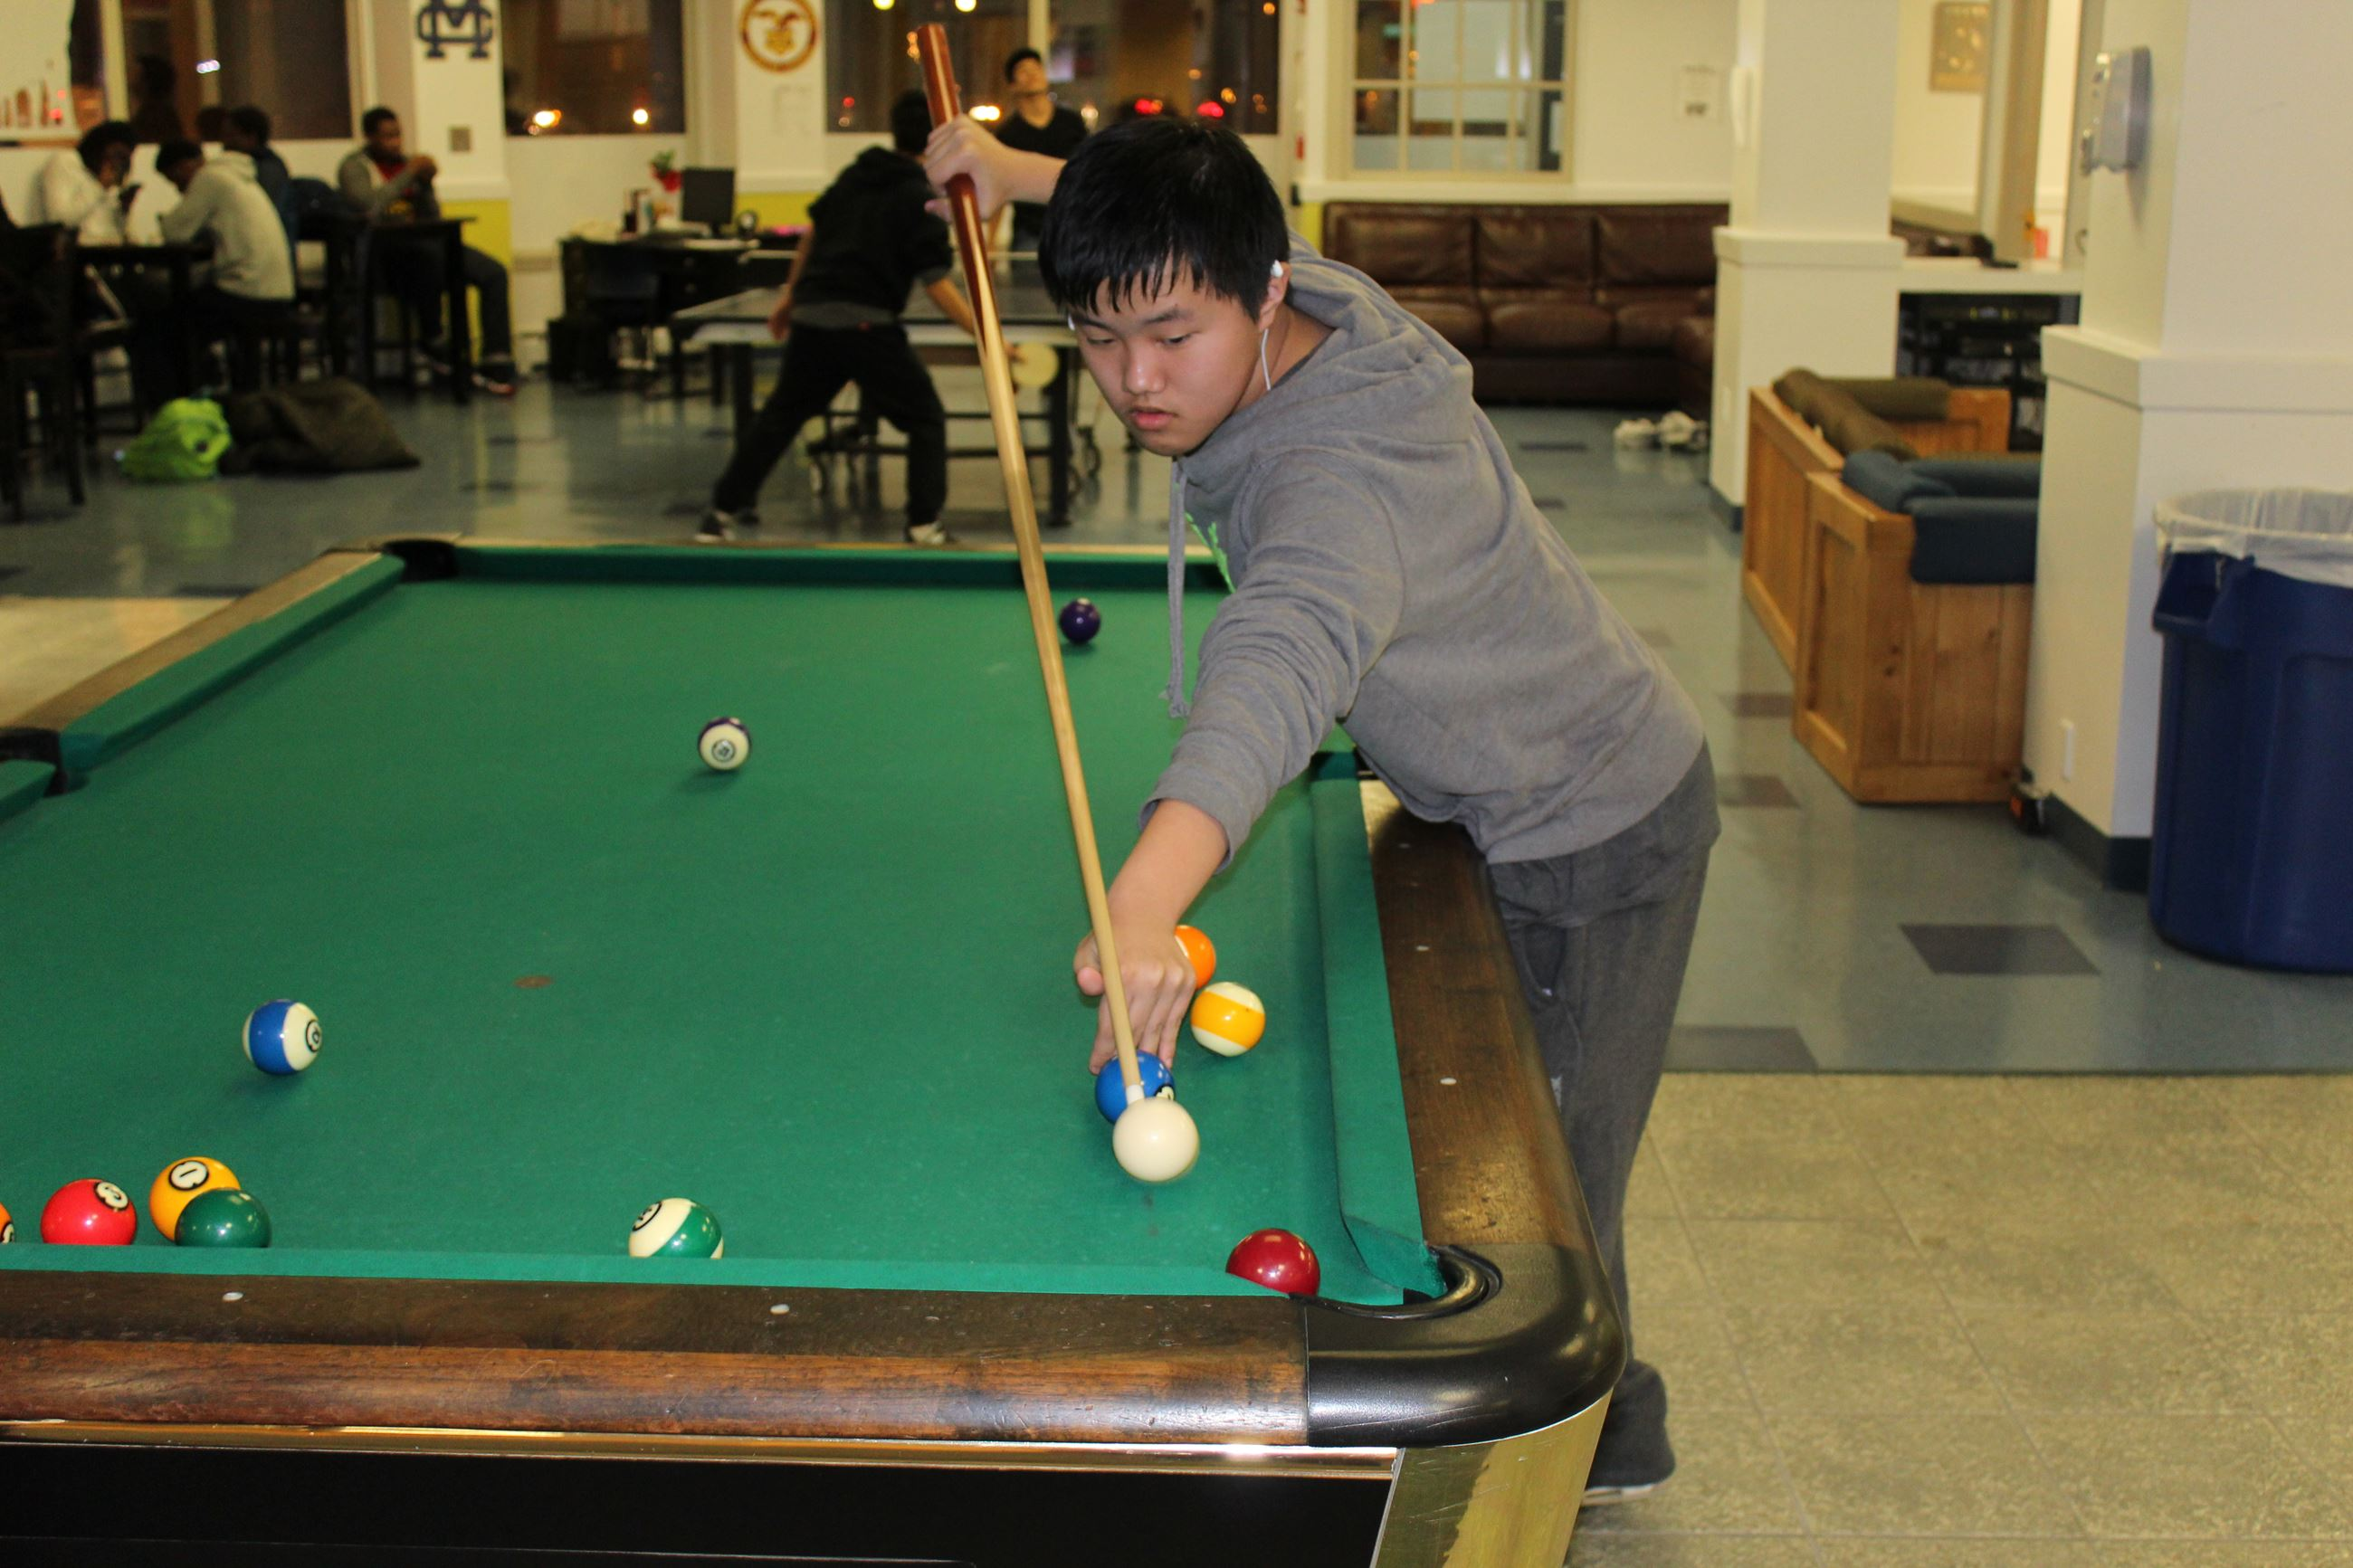 Teen Playing Pool